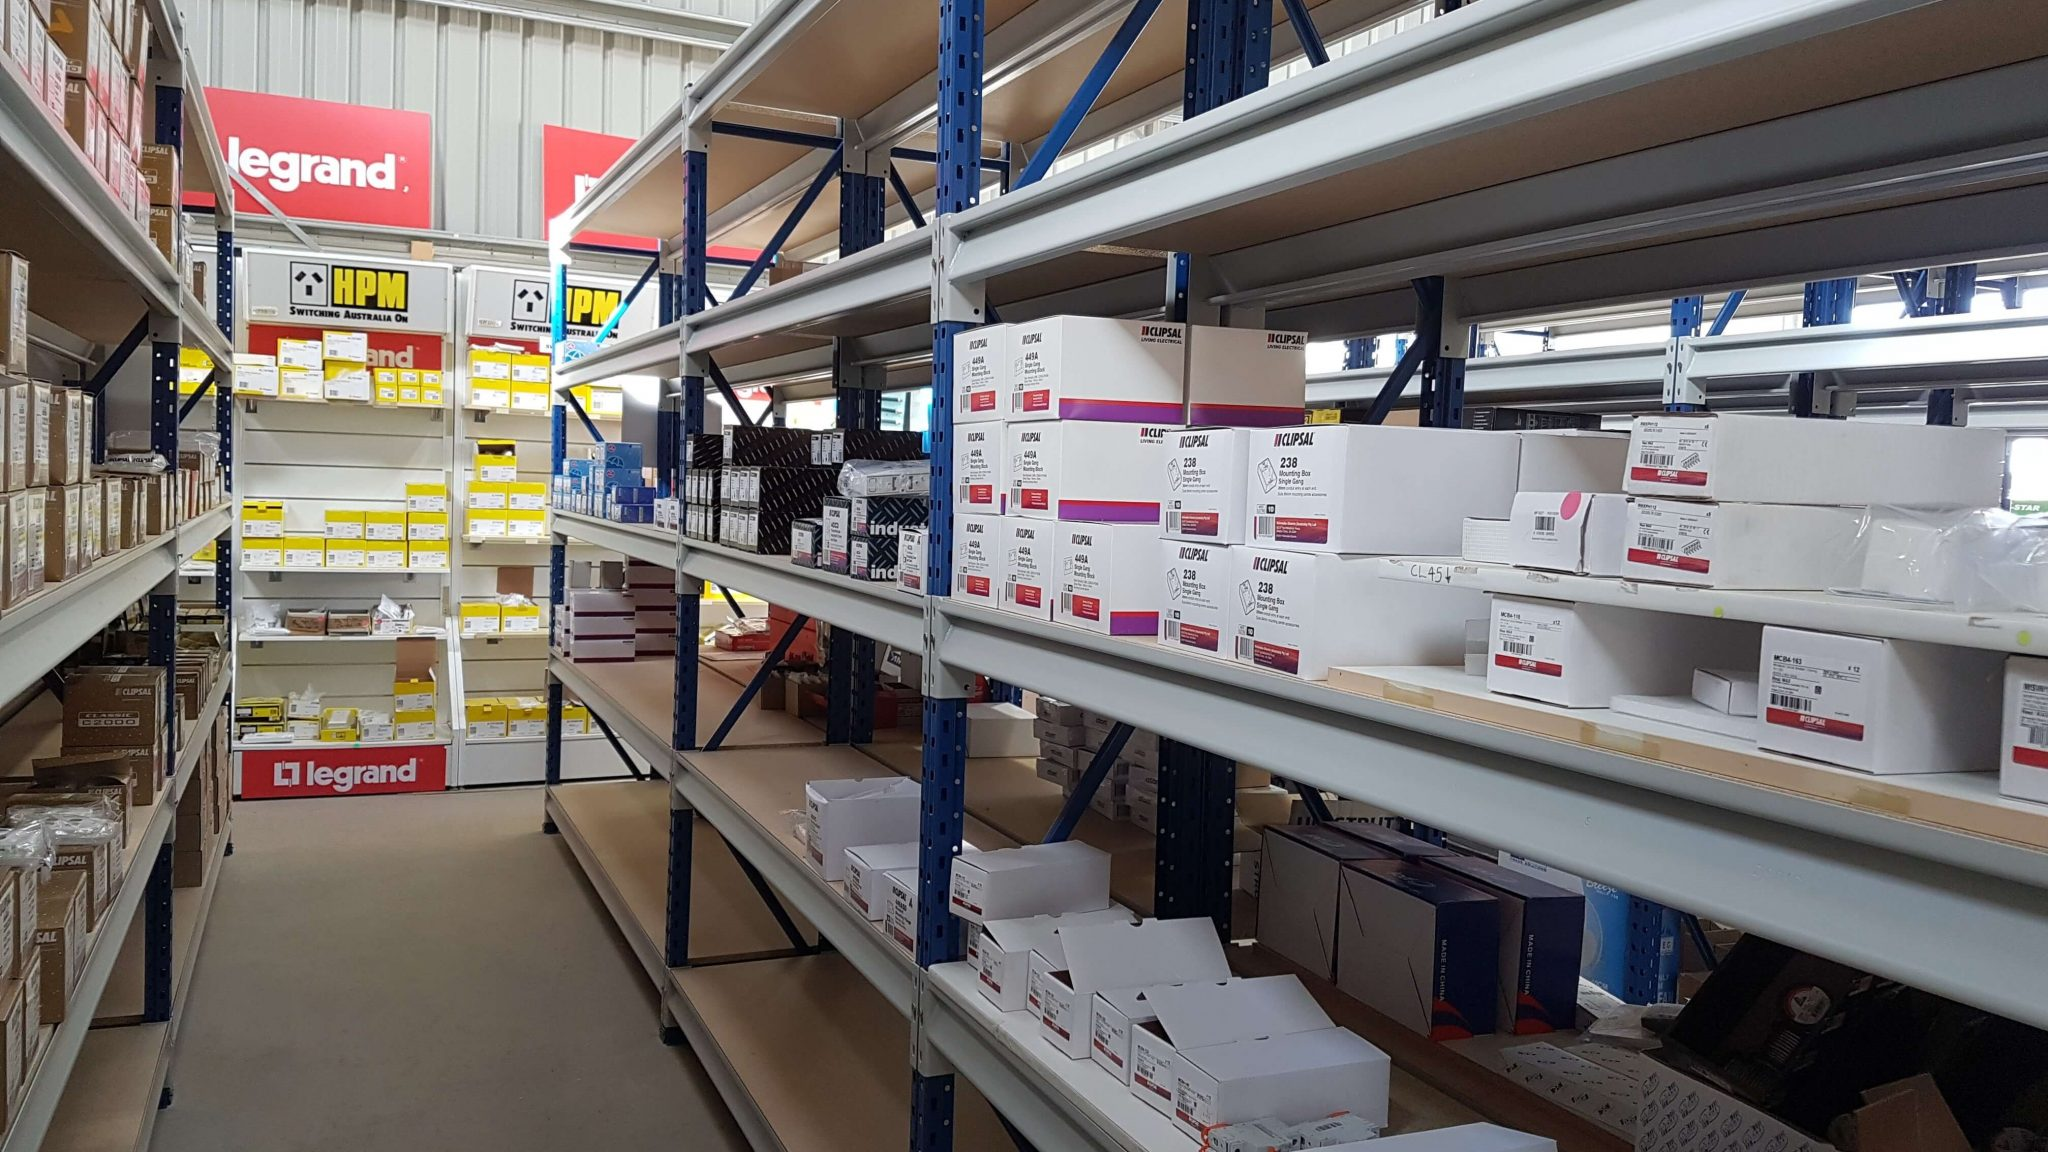 Longspan shelving with 5 shelves